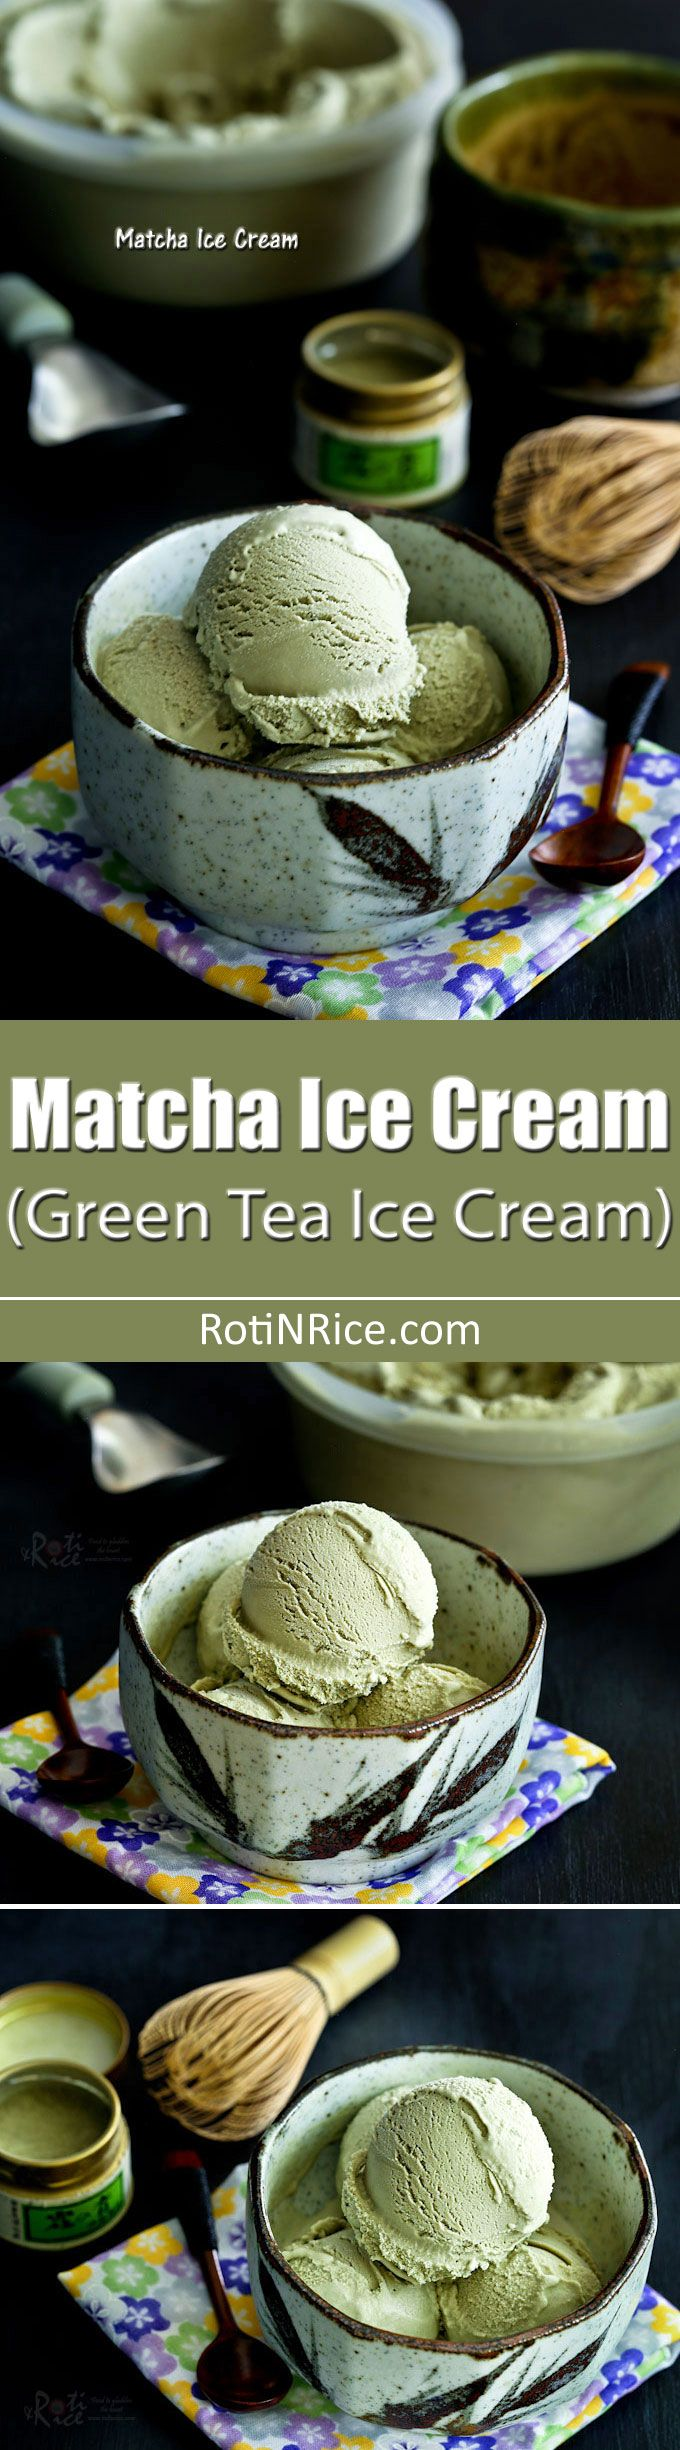 Treat family and friends to some delicious homemade Matcha Ice Cream. This simple eggless recipe is full of green tea flavor.